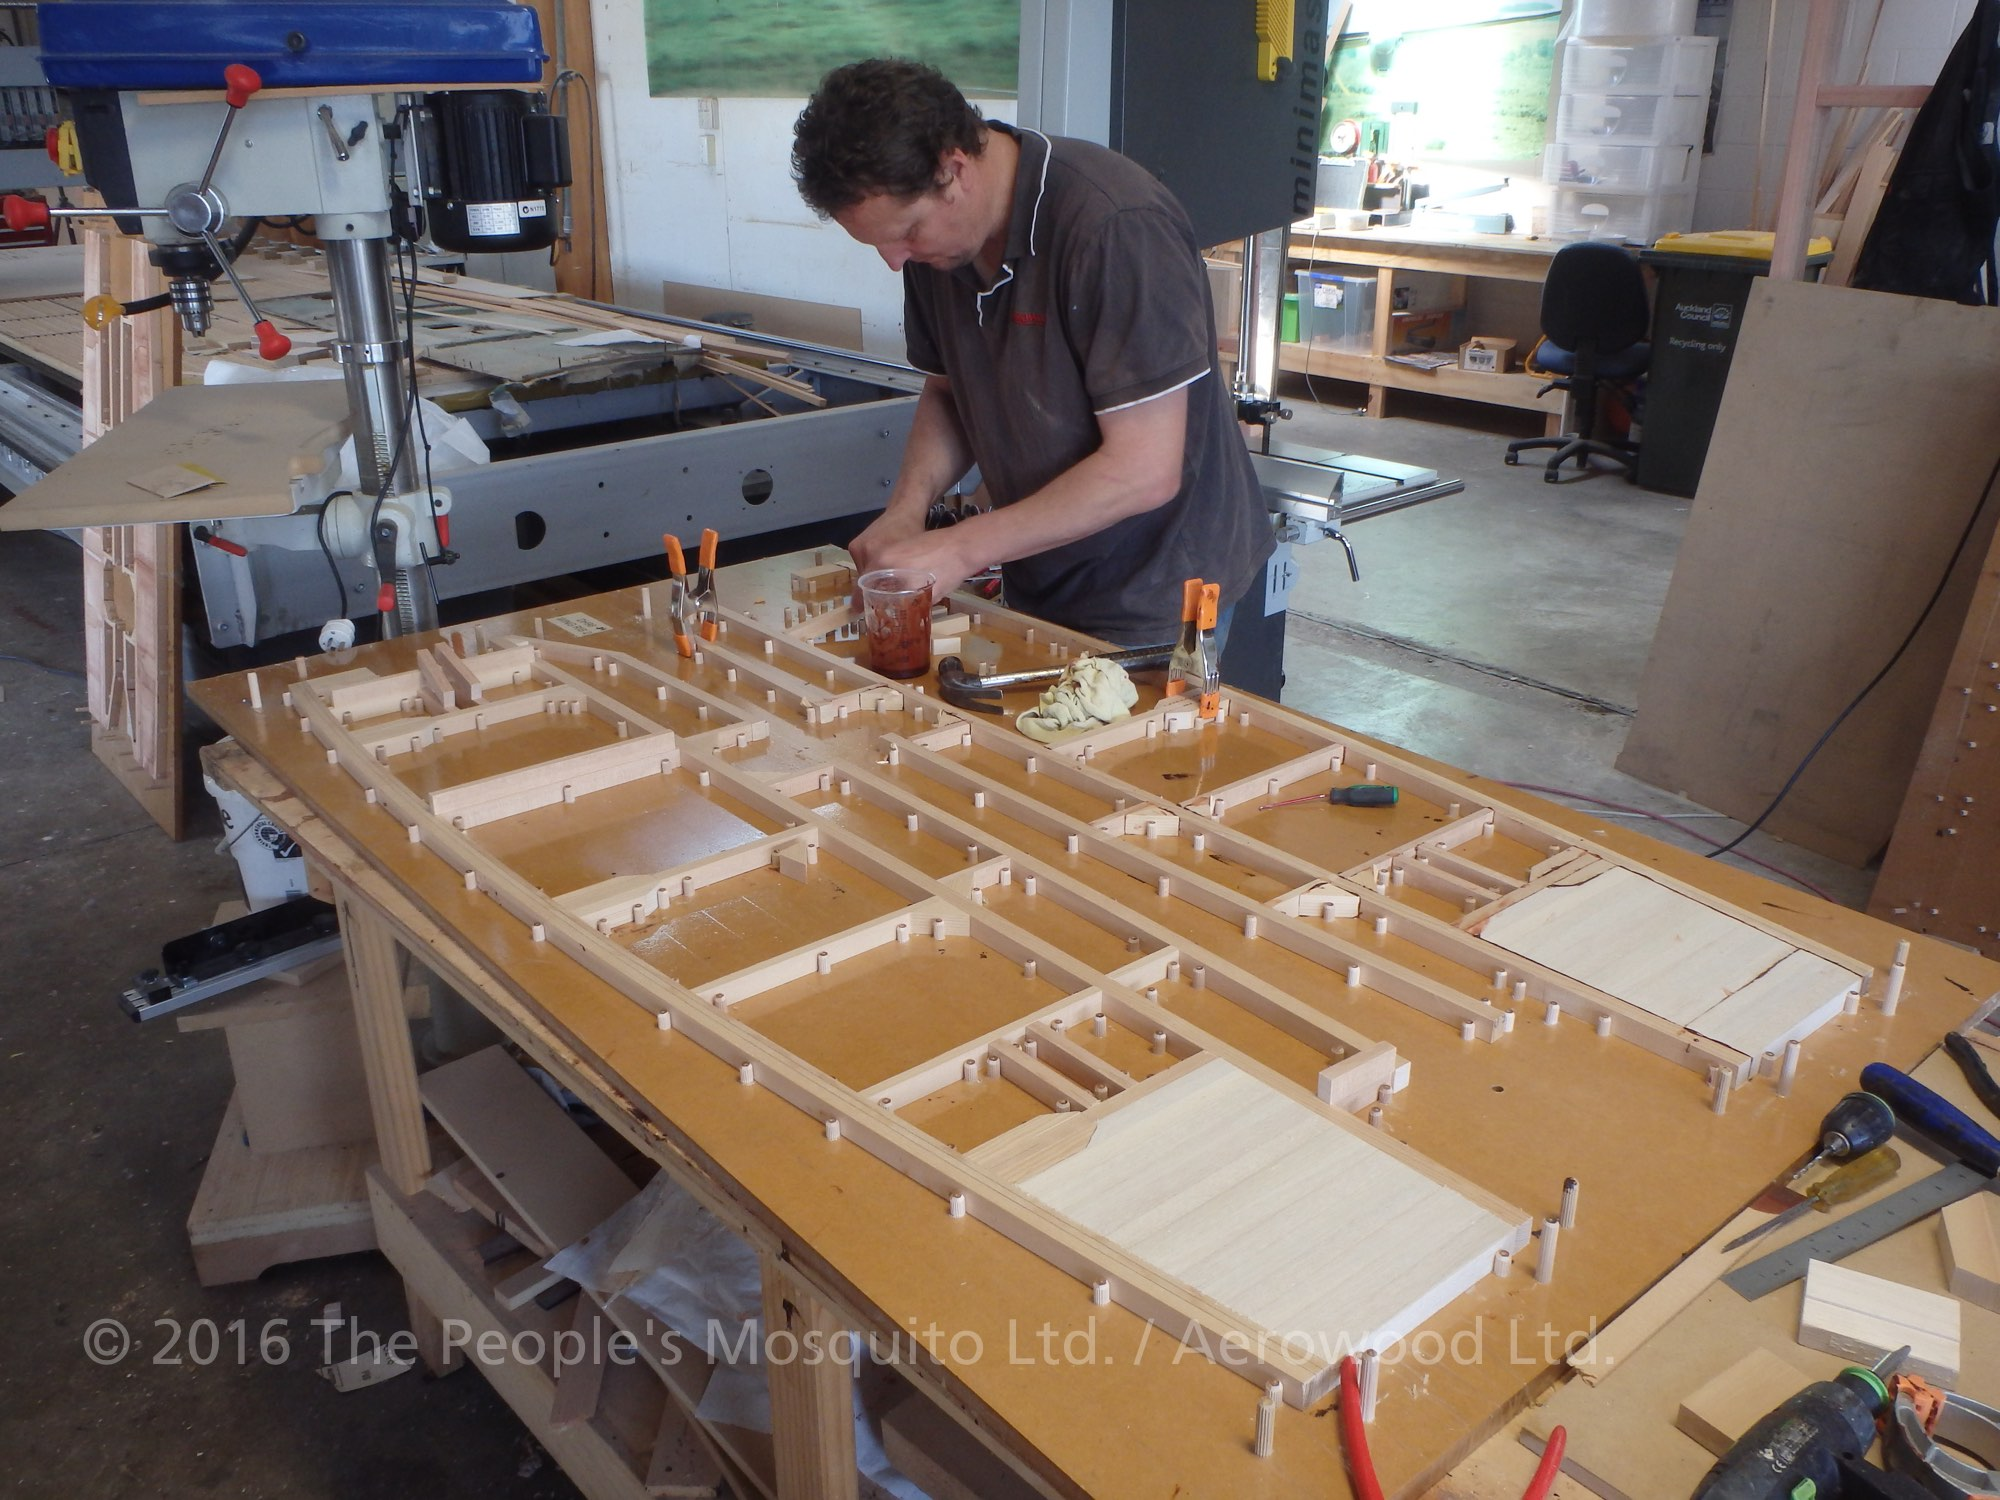 Assembling some of the wing ribs on one of the many different jigs. (photo via The People's Mosquito)